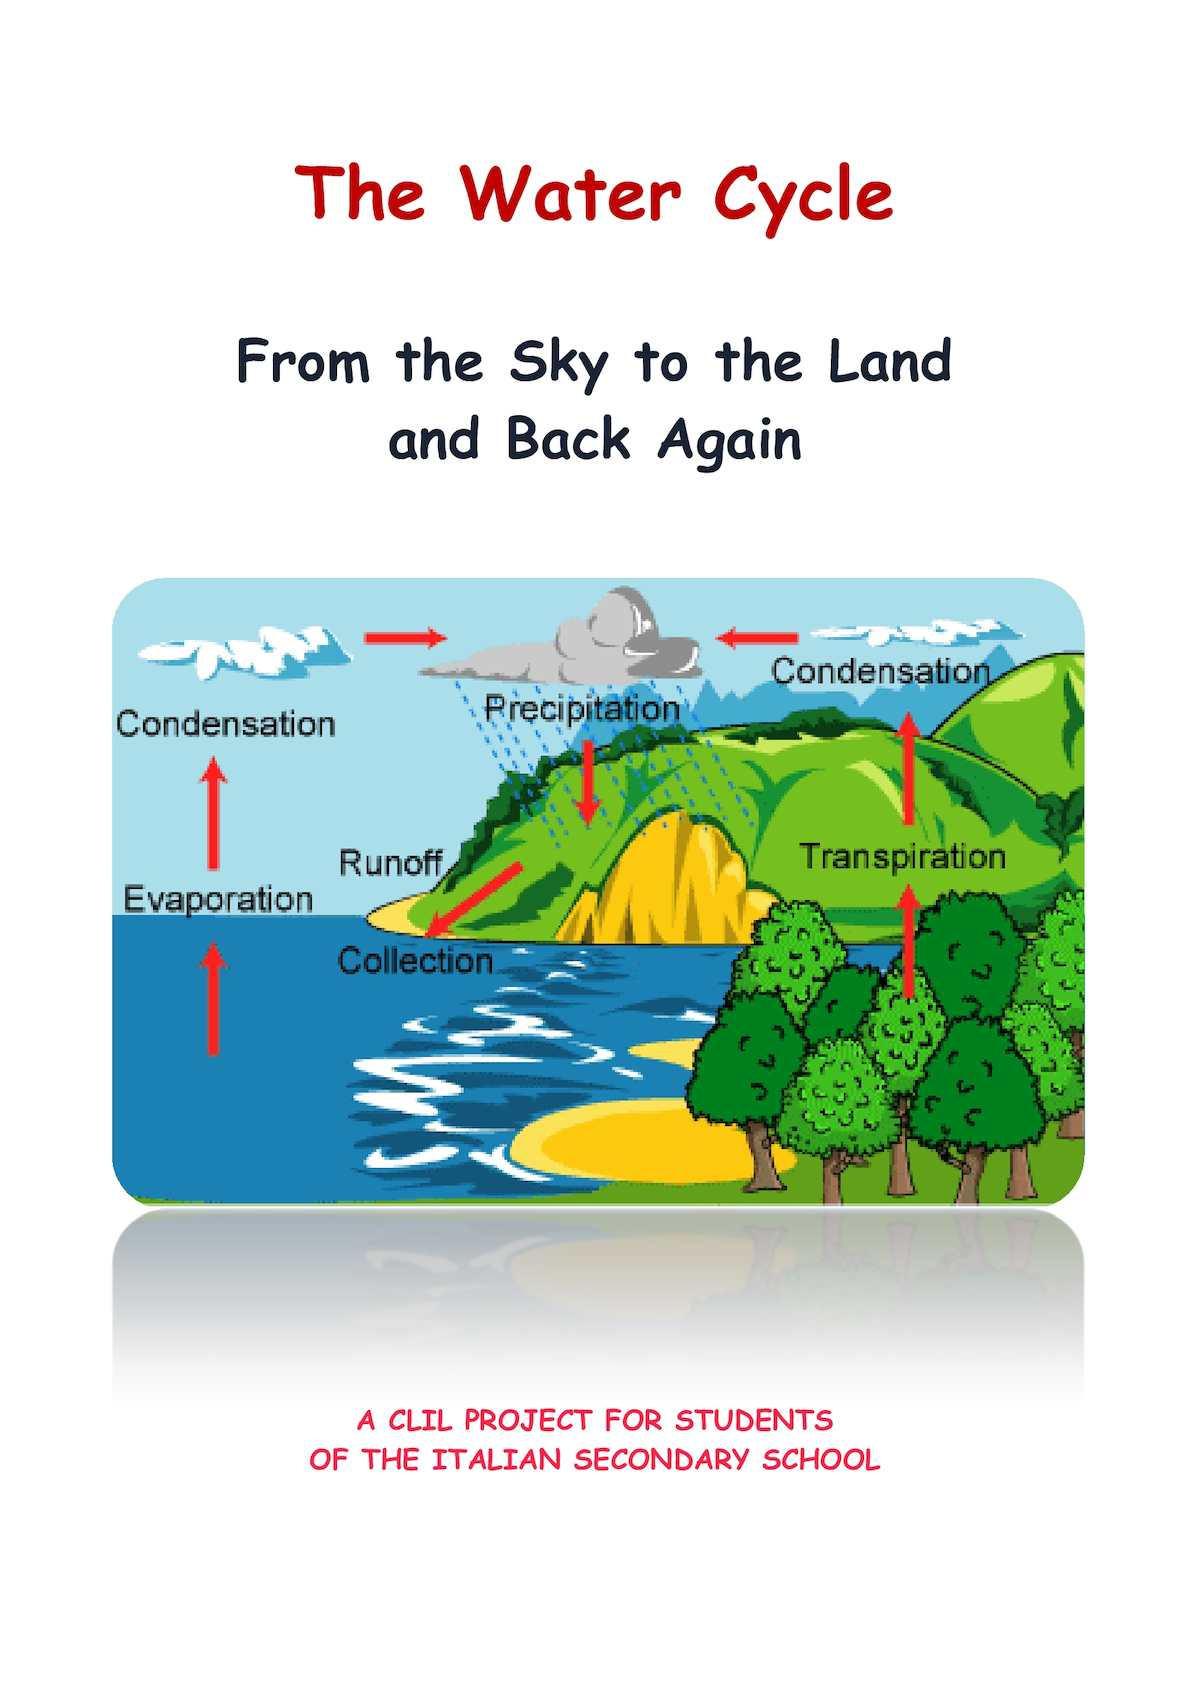 hight resolution of the water cycle from the sky to the land and back again